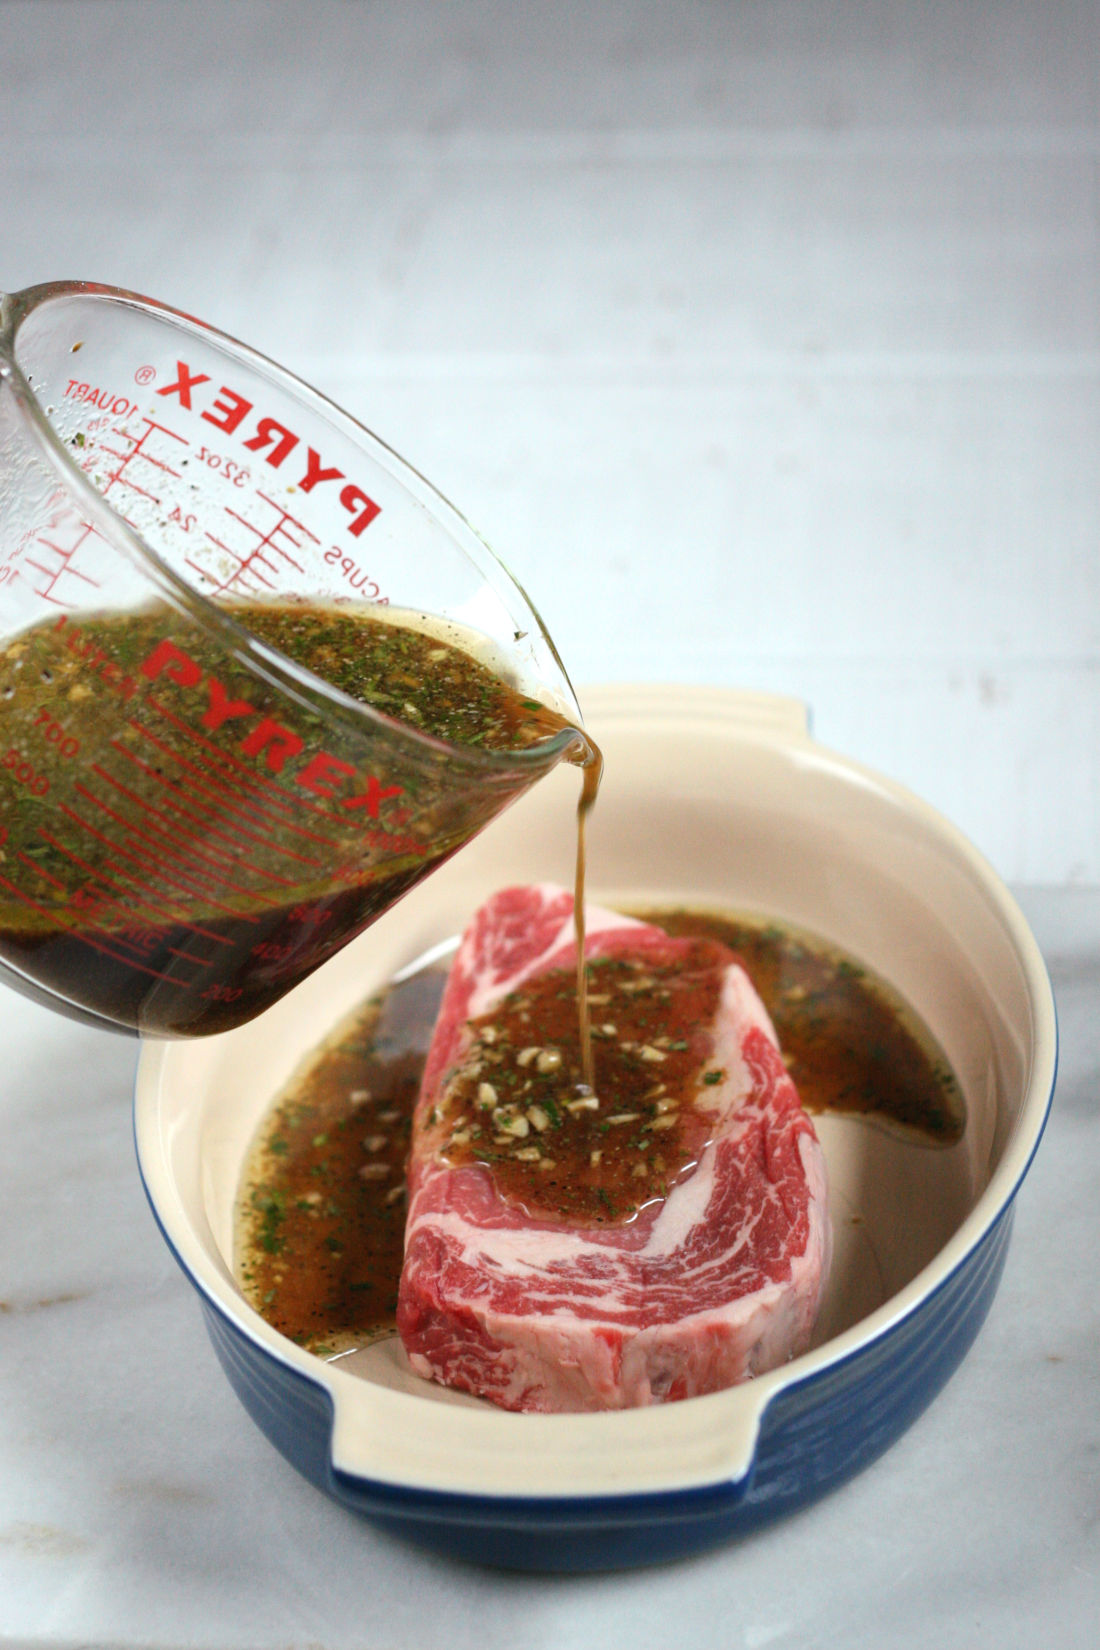 steak marinade being poured over a ribeye steak in an oval ceramic baking dish.